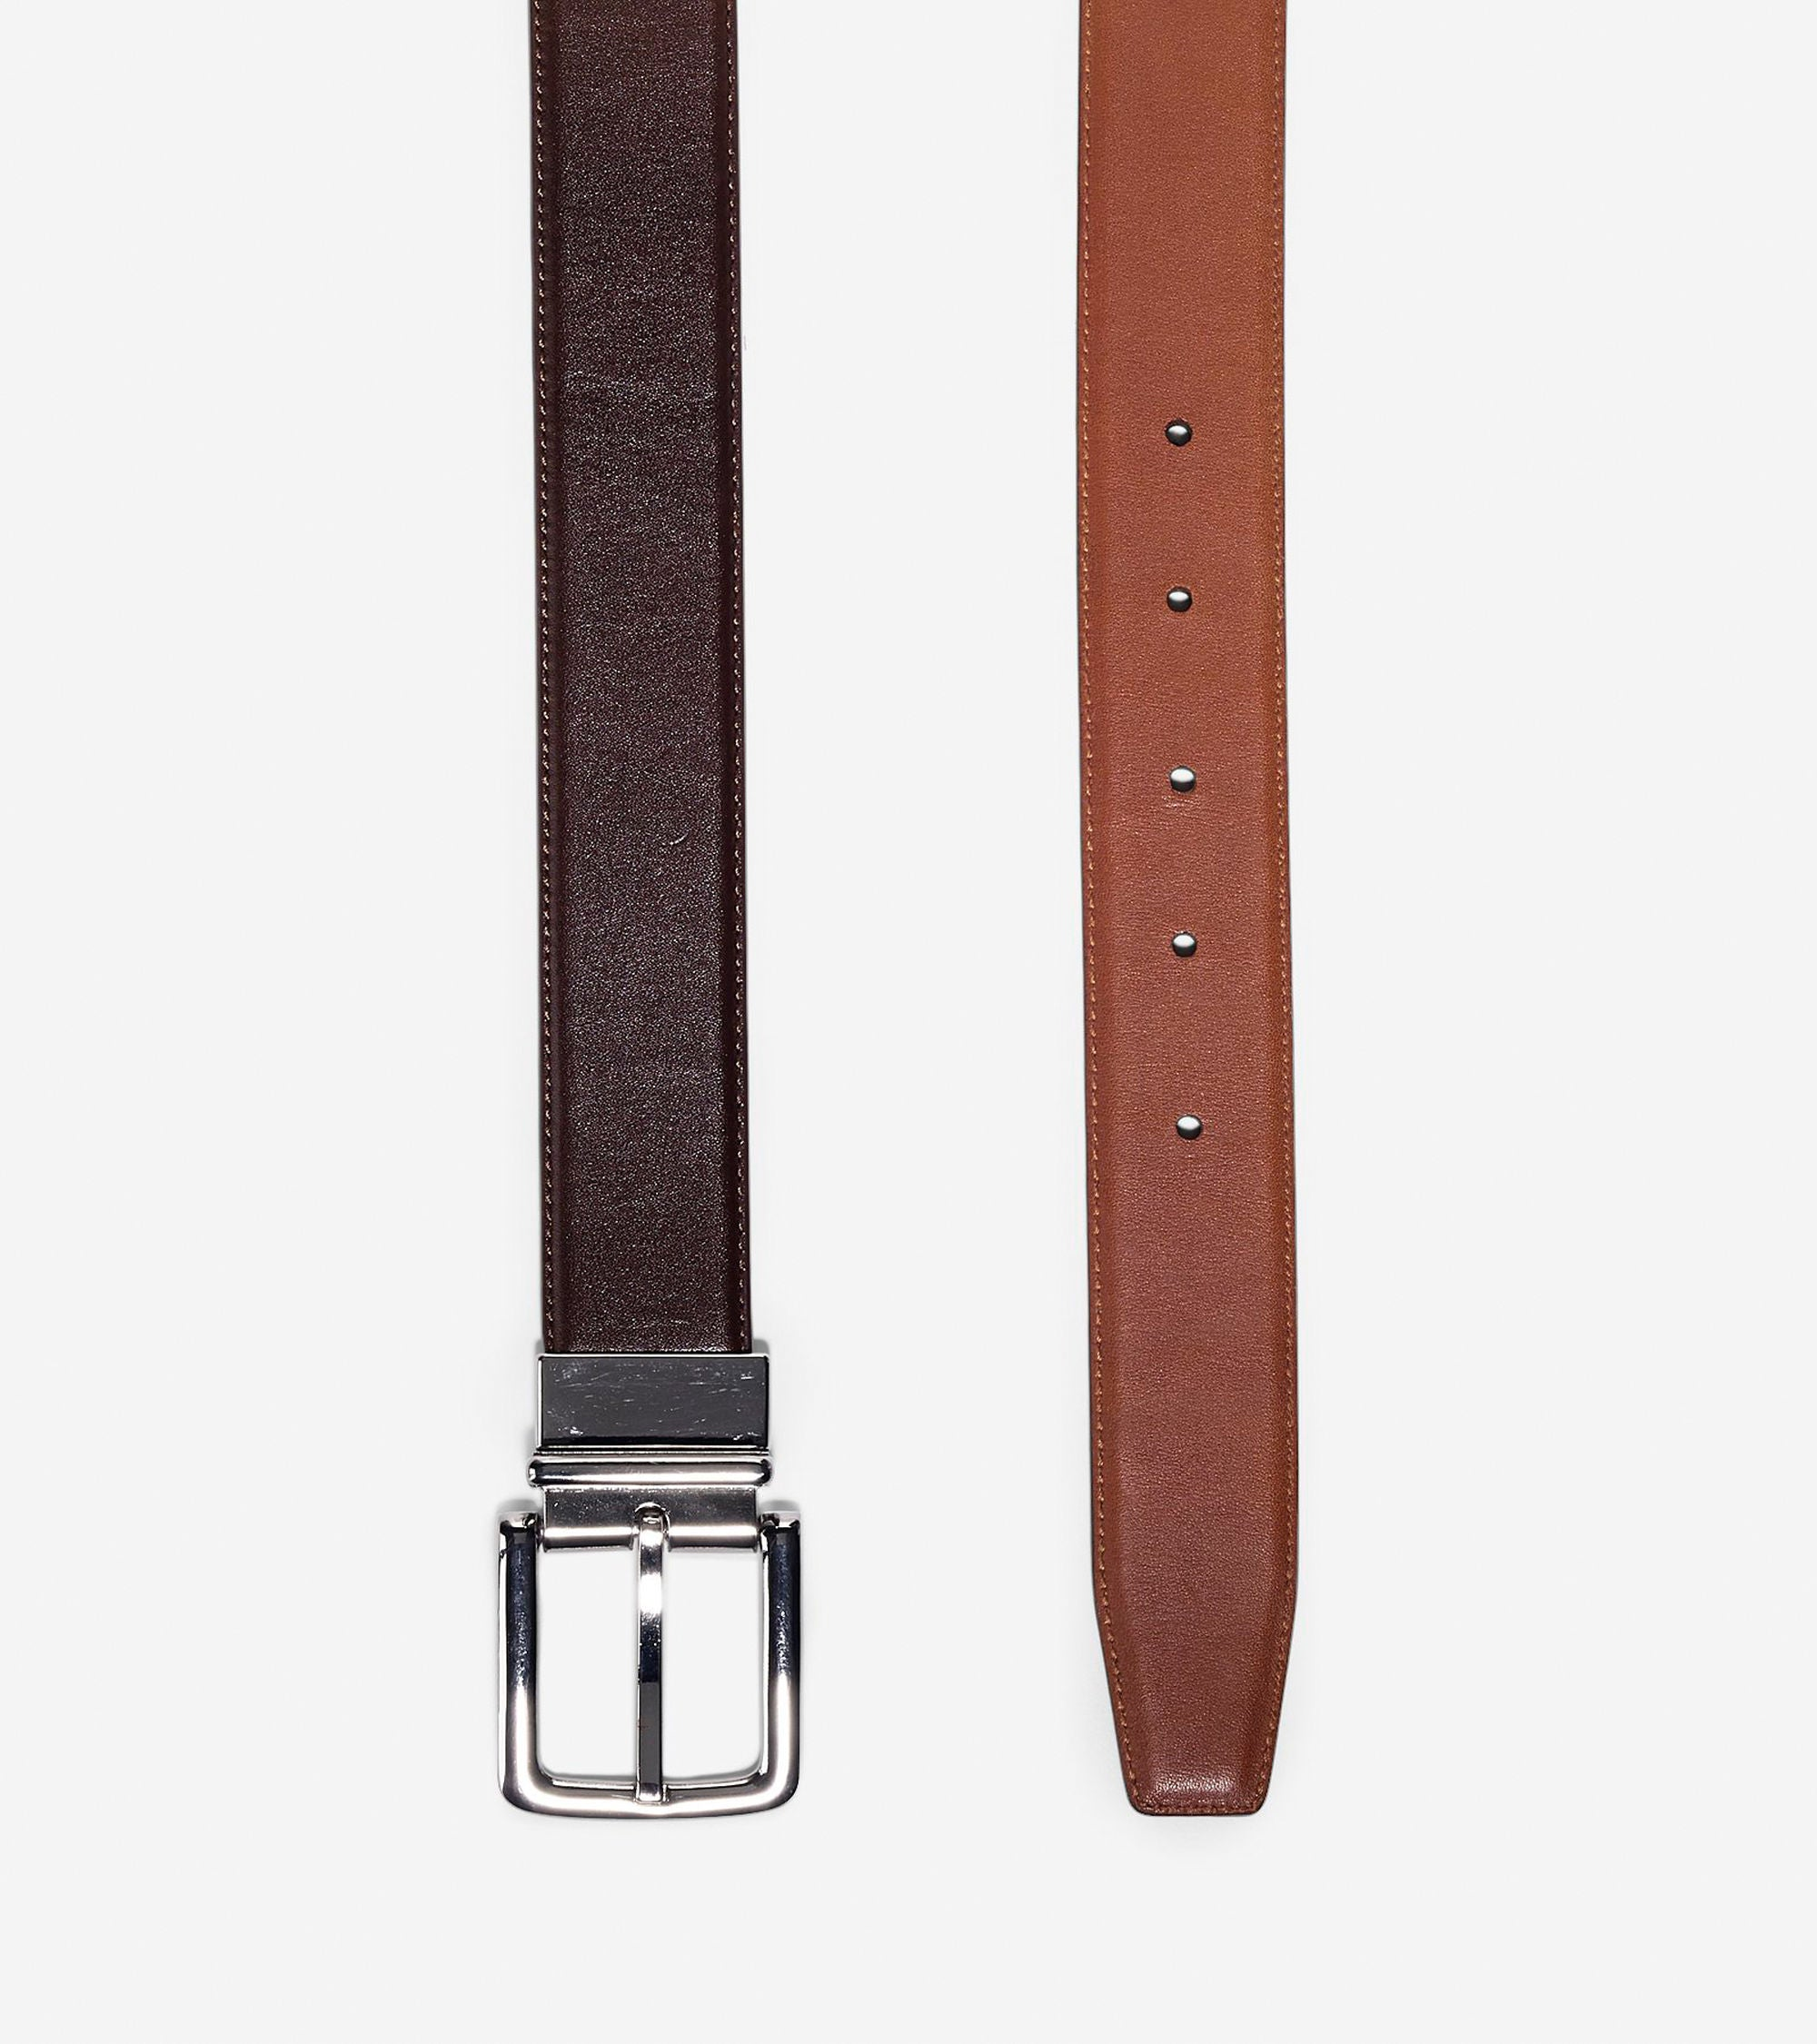 32mm Reversible Dress Leather Belt,BELT,Cole Haan, | GentRow.com